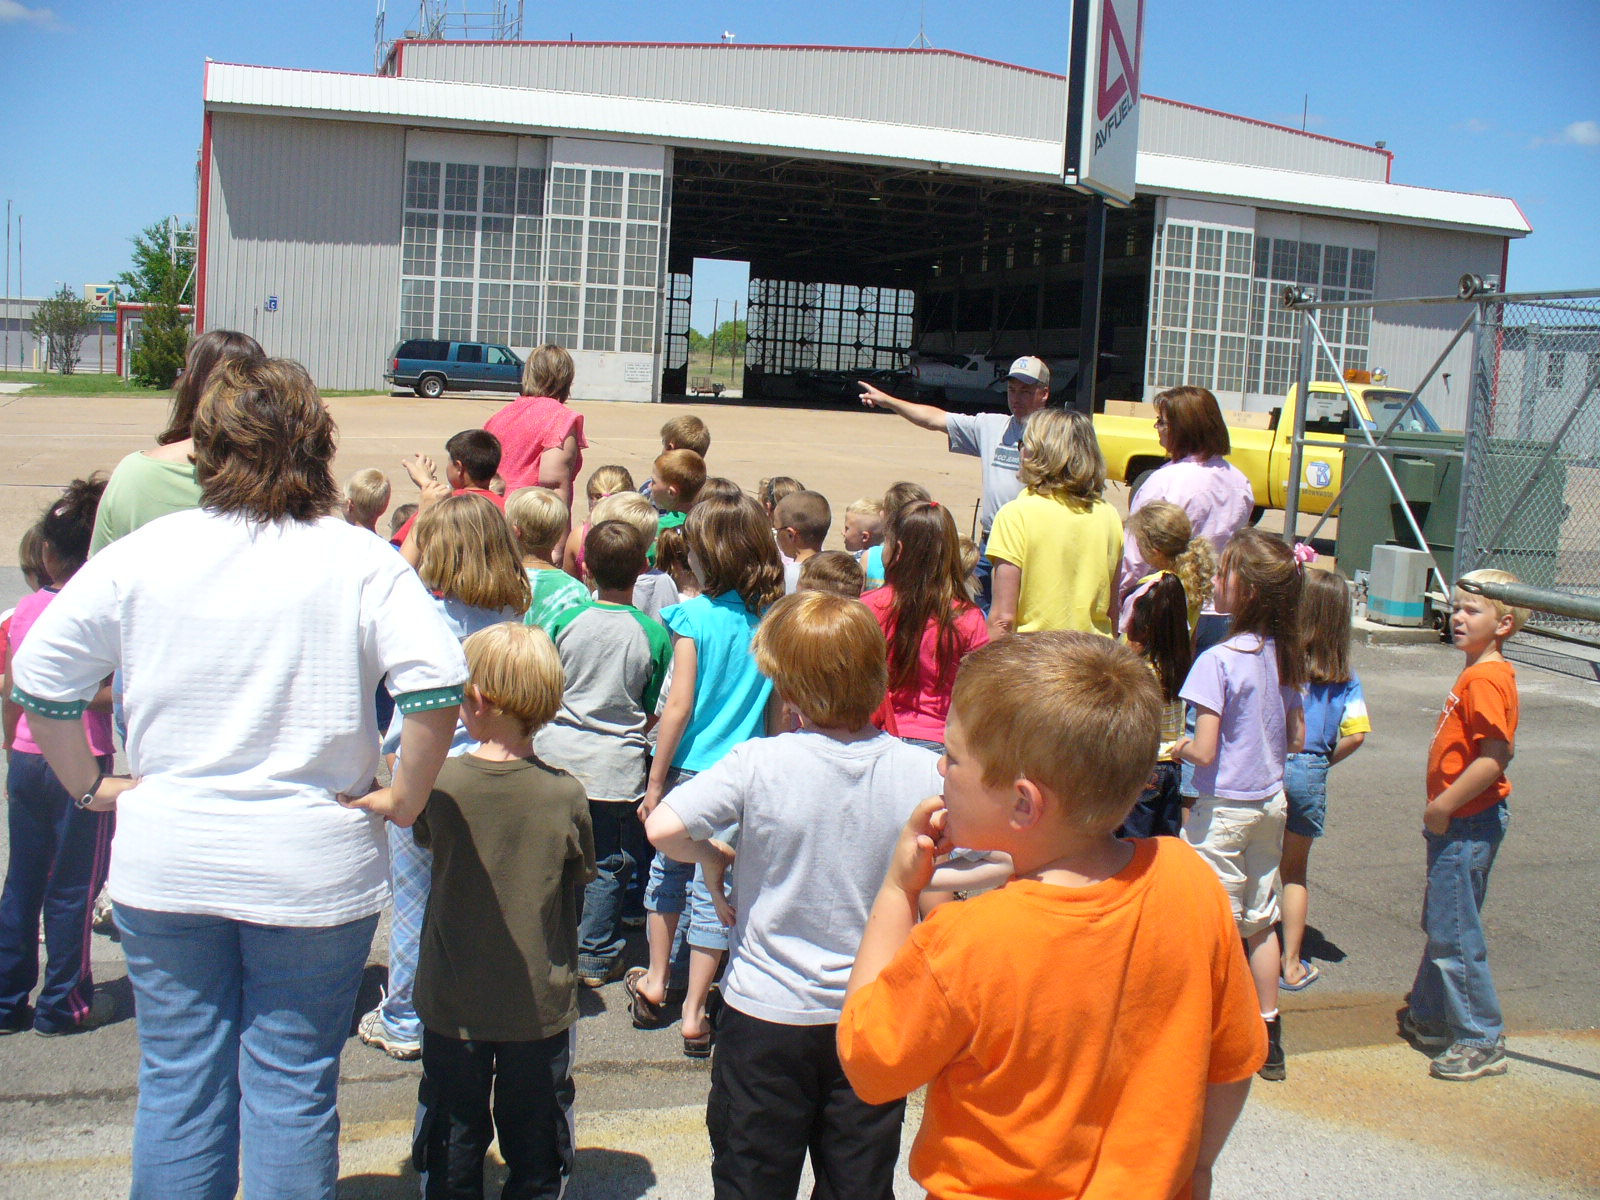 Students and teachers gather outside the airport hangar during a tour of the airport.